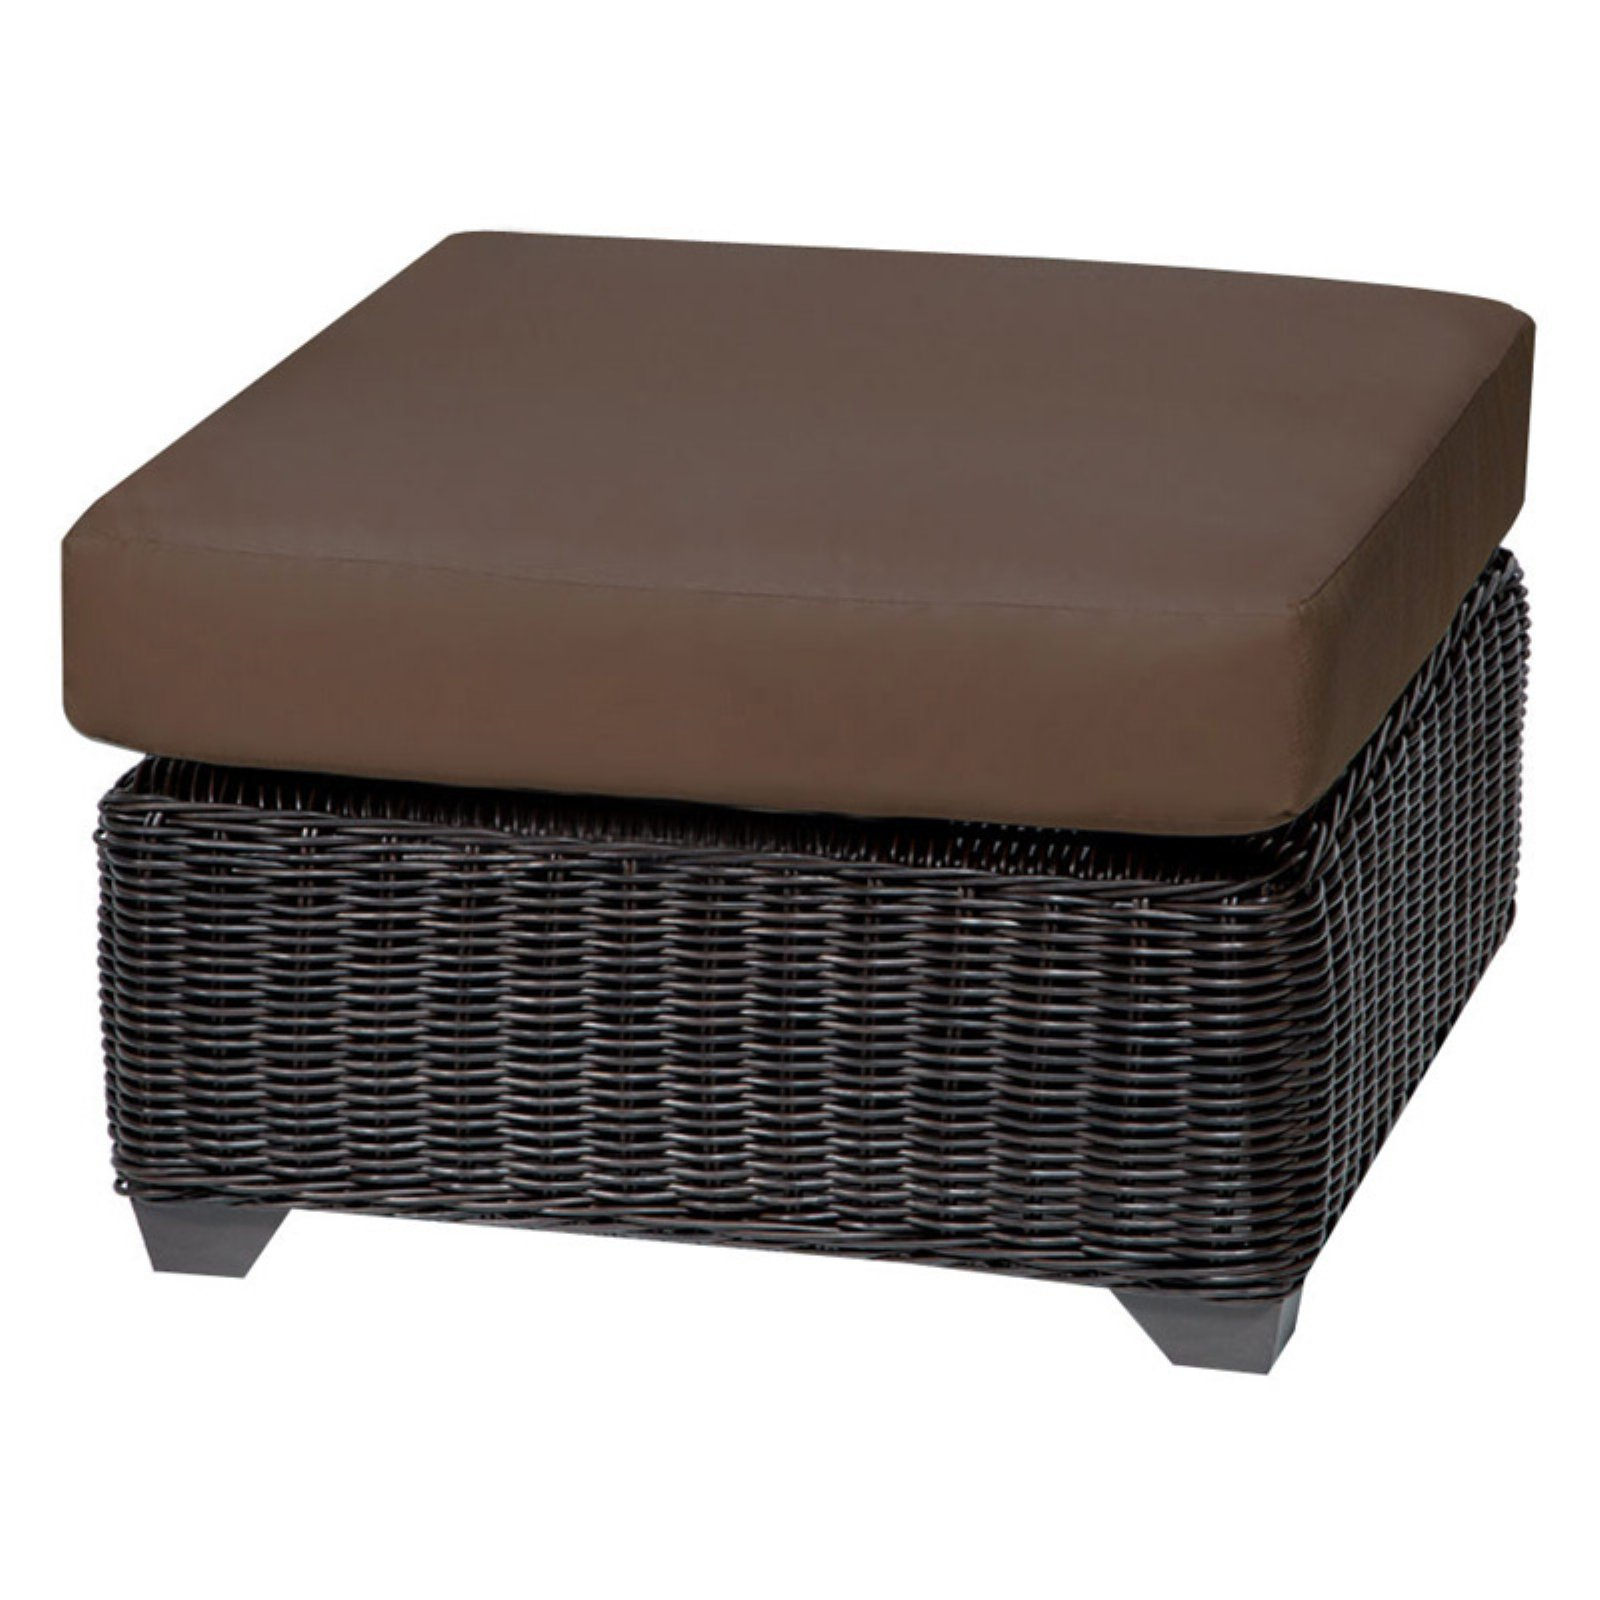 TK Classics Venice Wicker Outdoor Ottoman - Set of 2 Cushion Covers